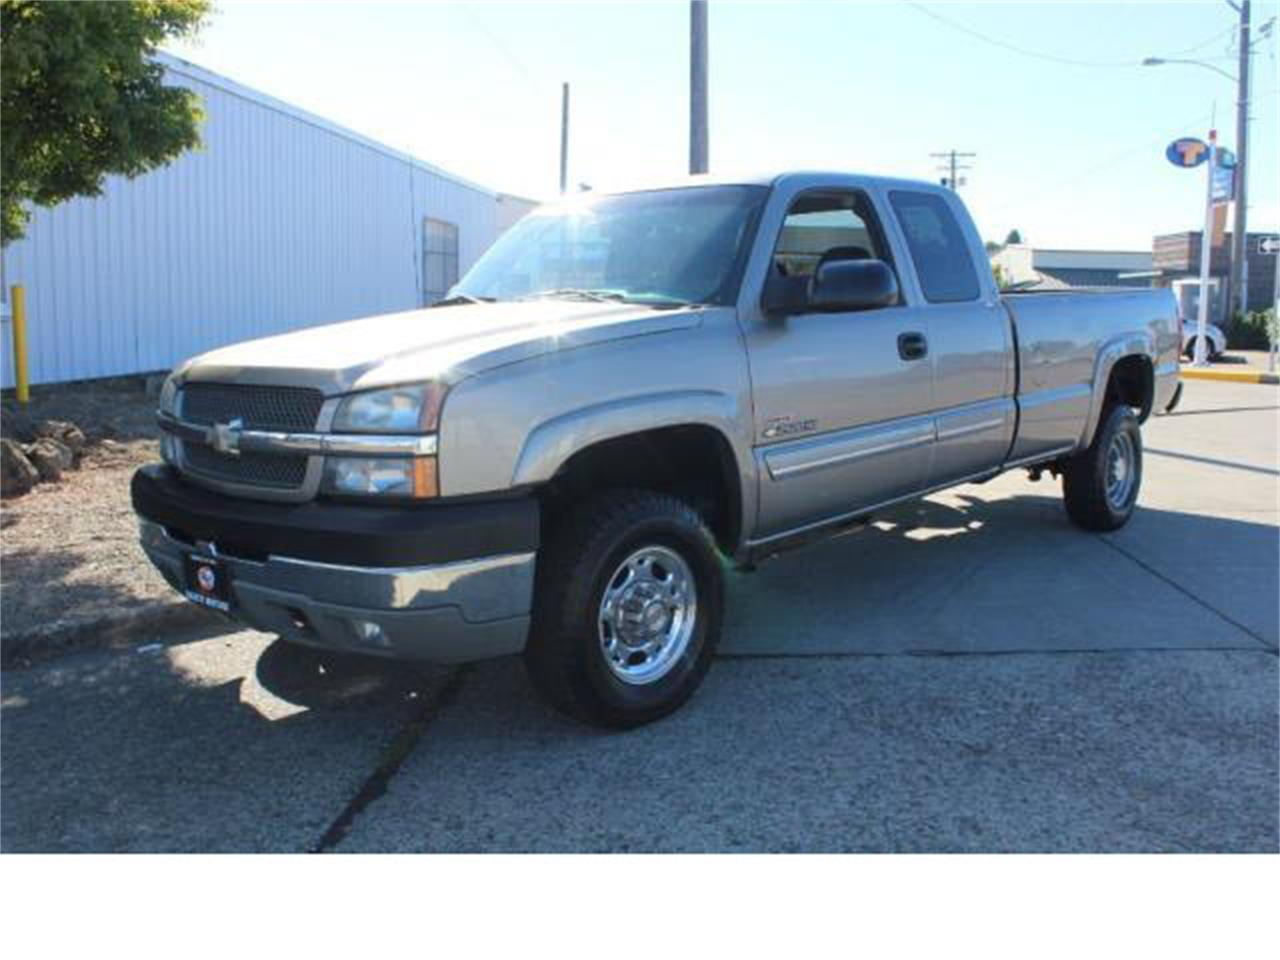 Large Picture of 2003 Silverado located in Tacoma Washington - $11,990.00 Offered by Sabeti Motors - M5R3